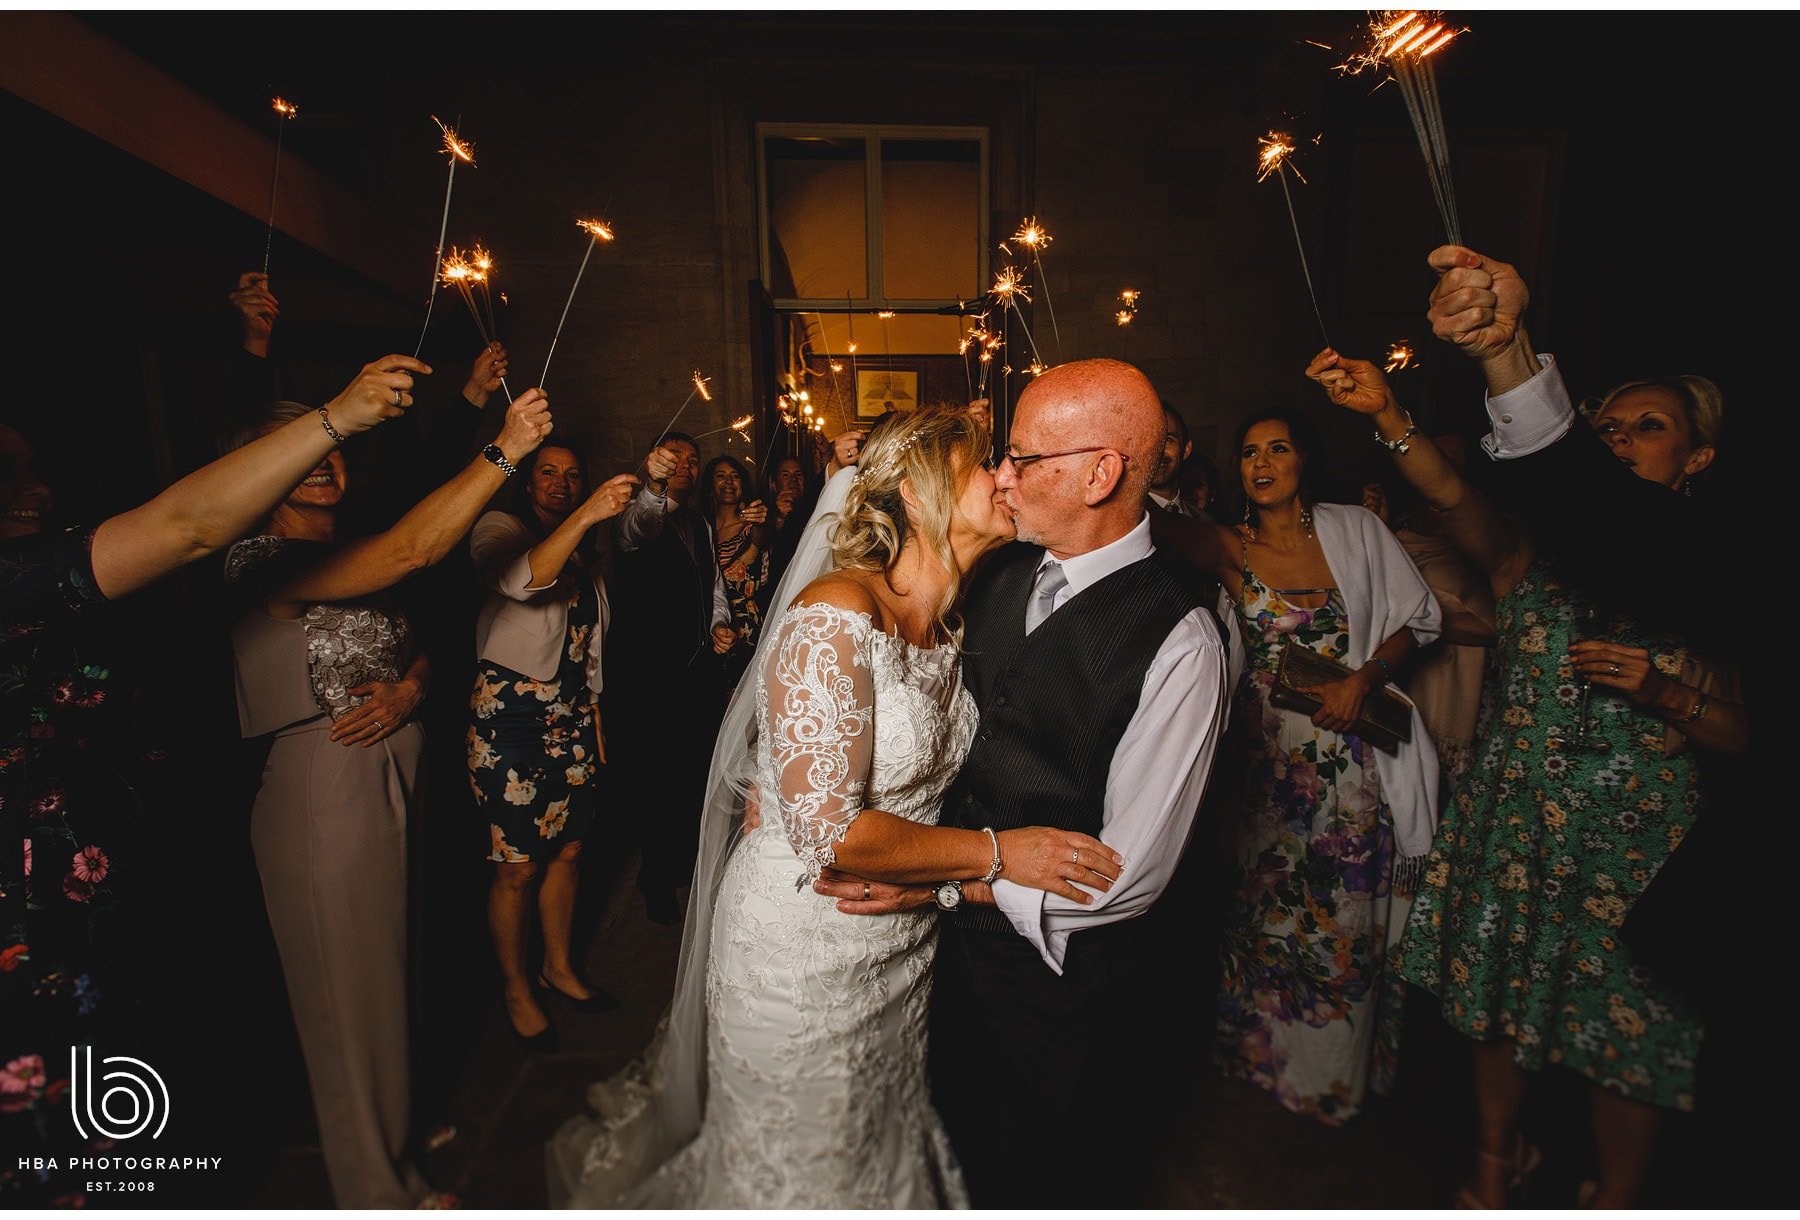 the bride & groom with sparklers!